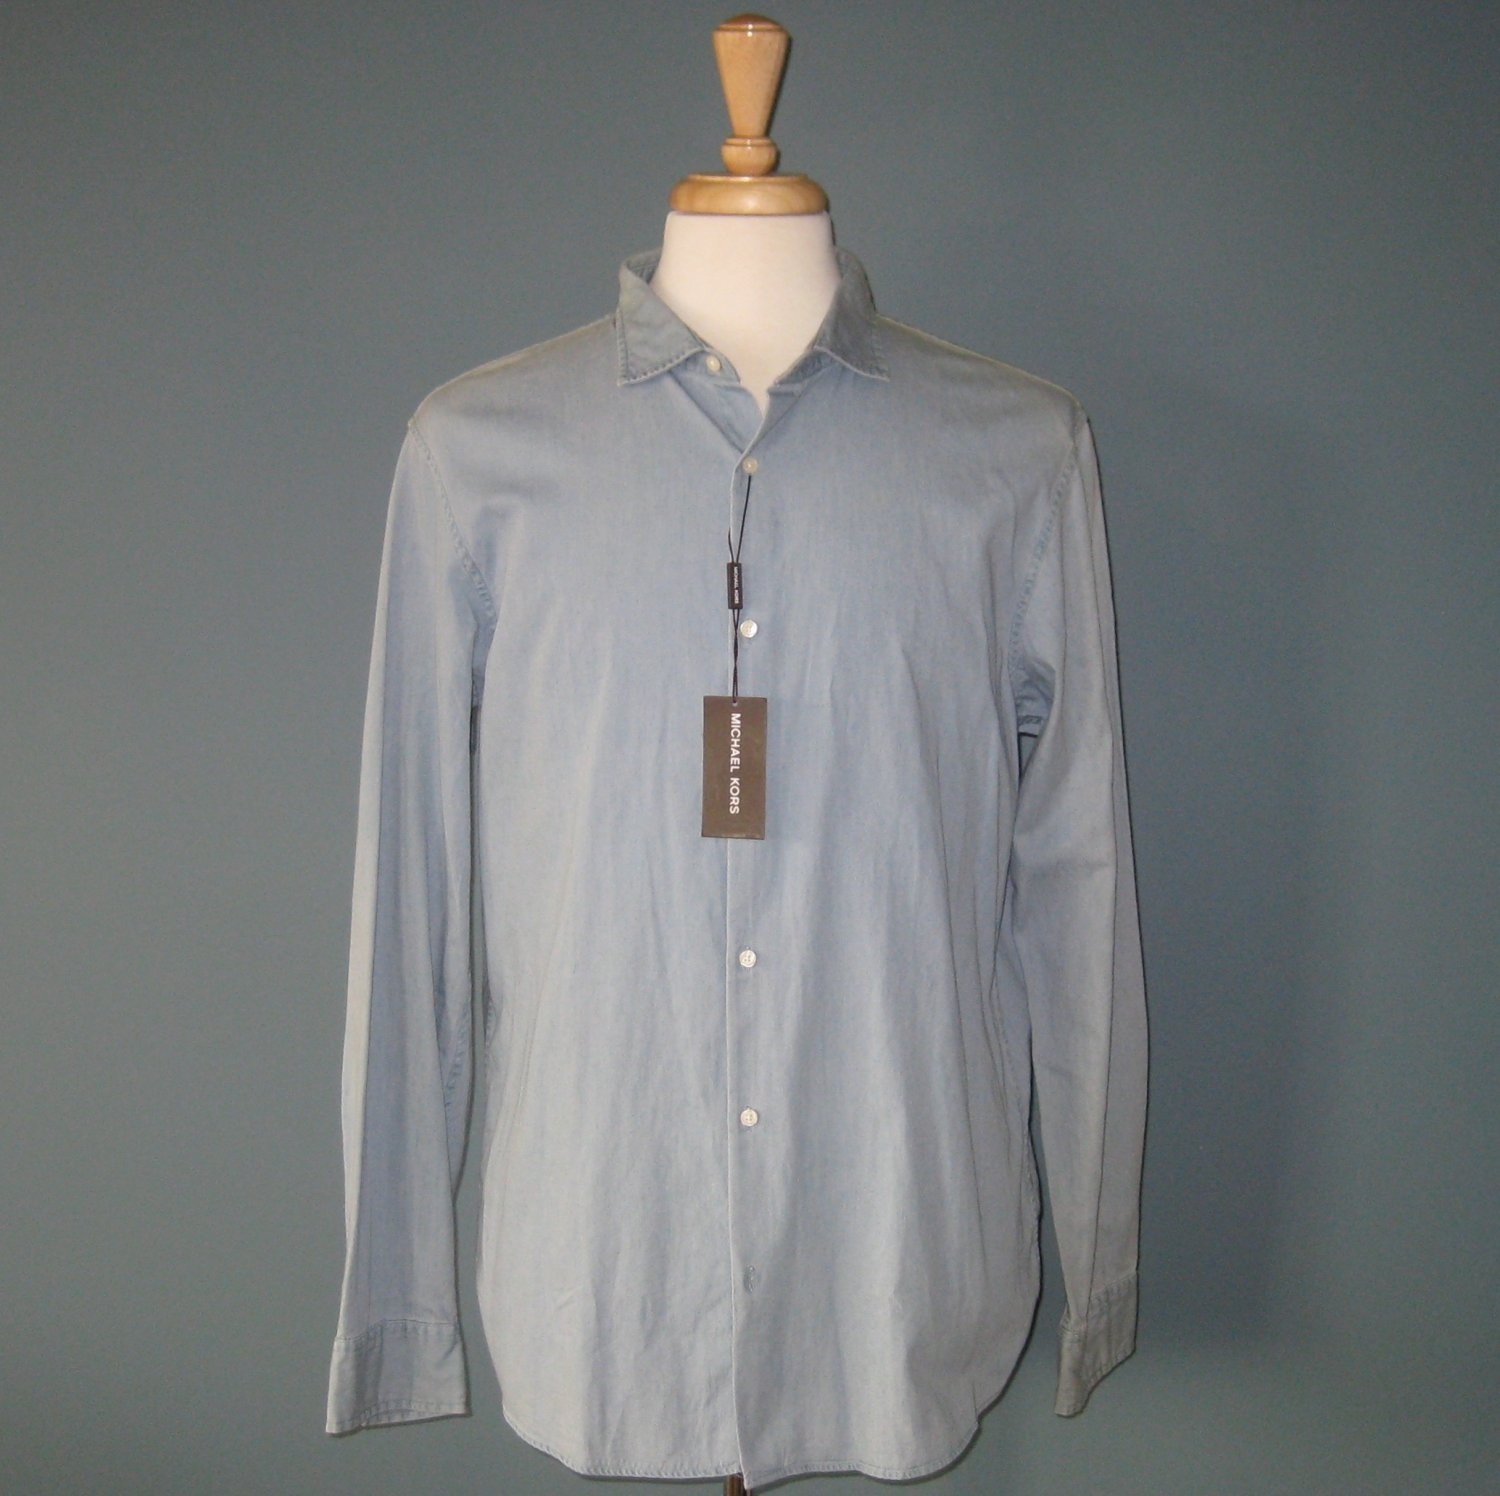 NWT Michael Kors L/S 100% Cotton Light Washed Denim Shirt - XL